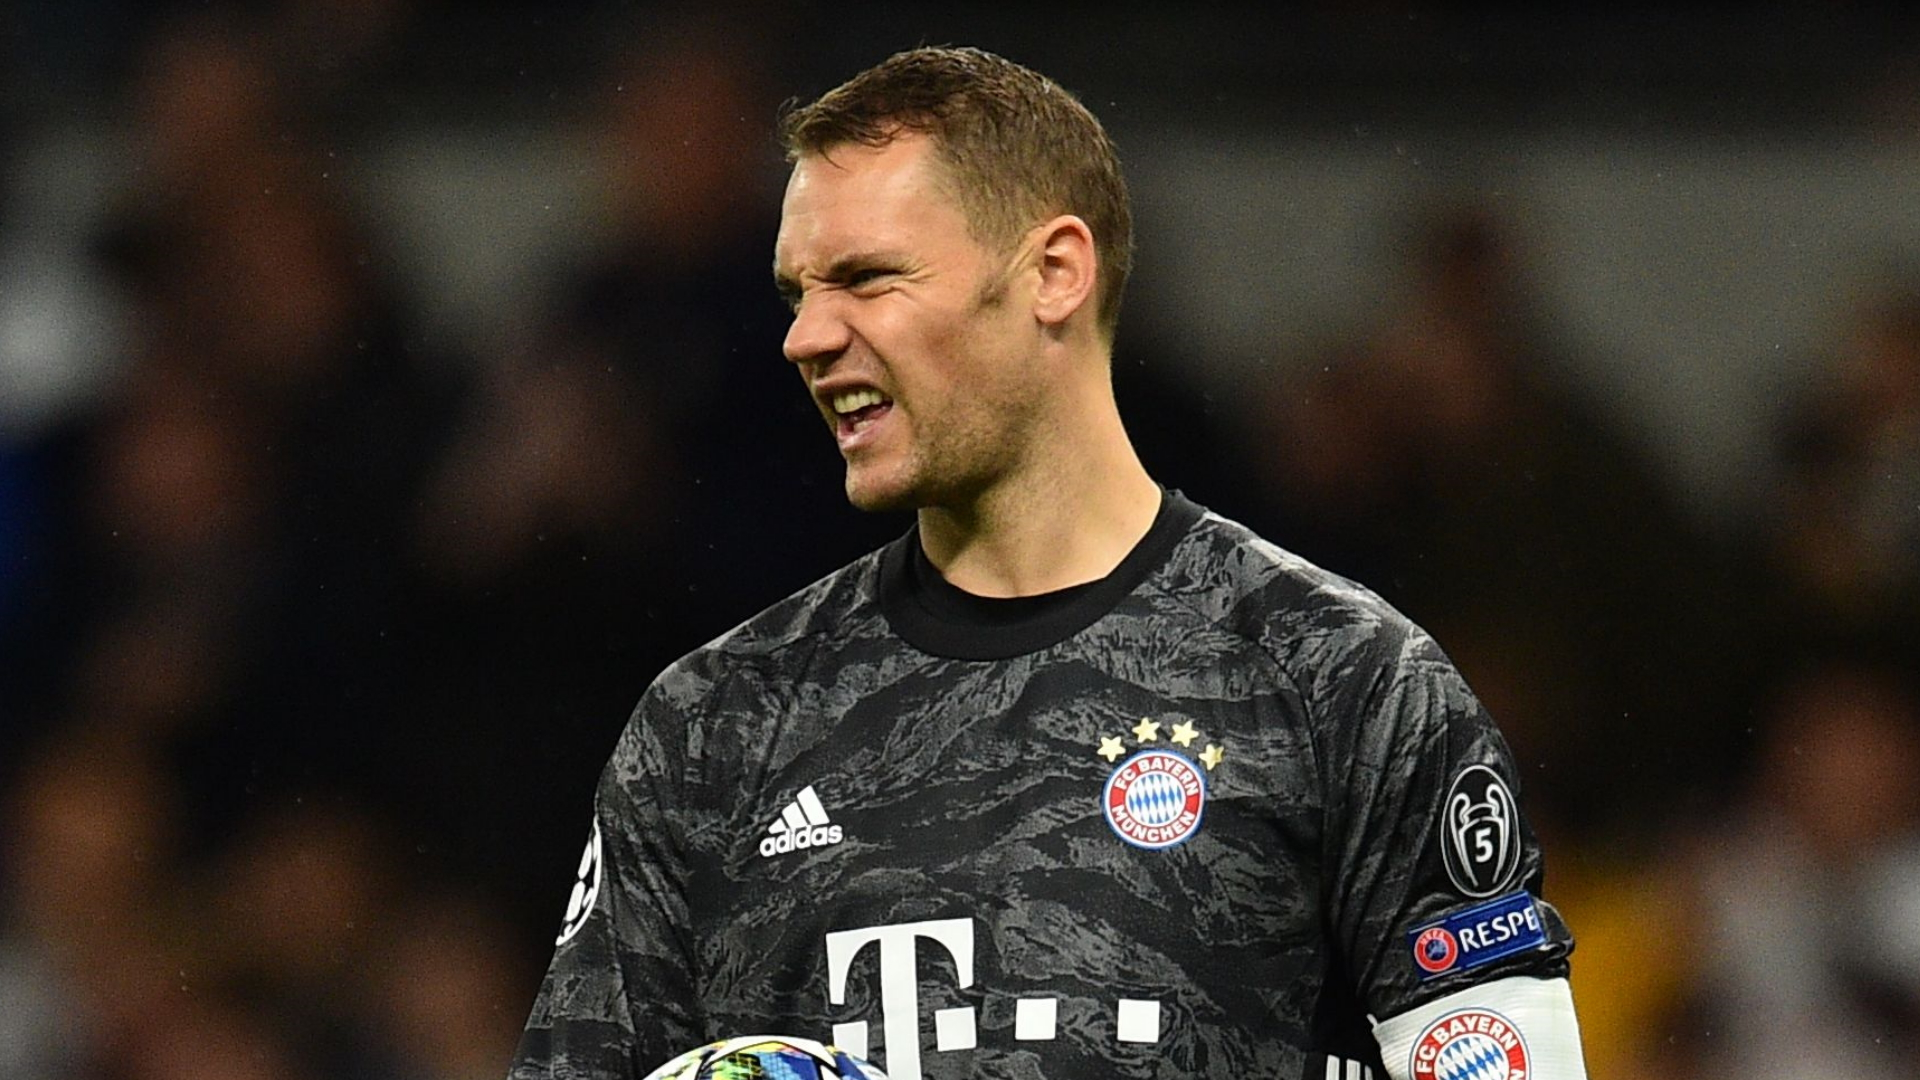 'Guardiola wanted to play Neuer in midfield!' – Bayern Munich goalkeeper could've lined up outfield, reveals Rummenigge